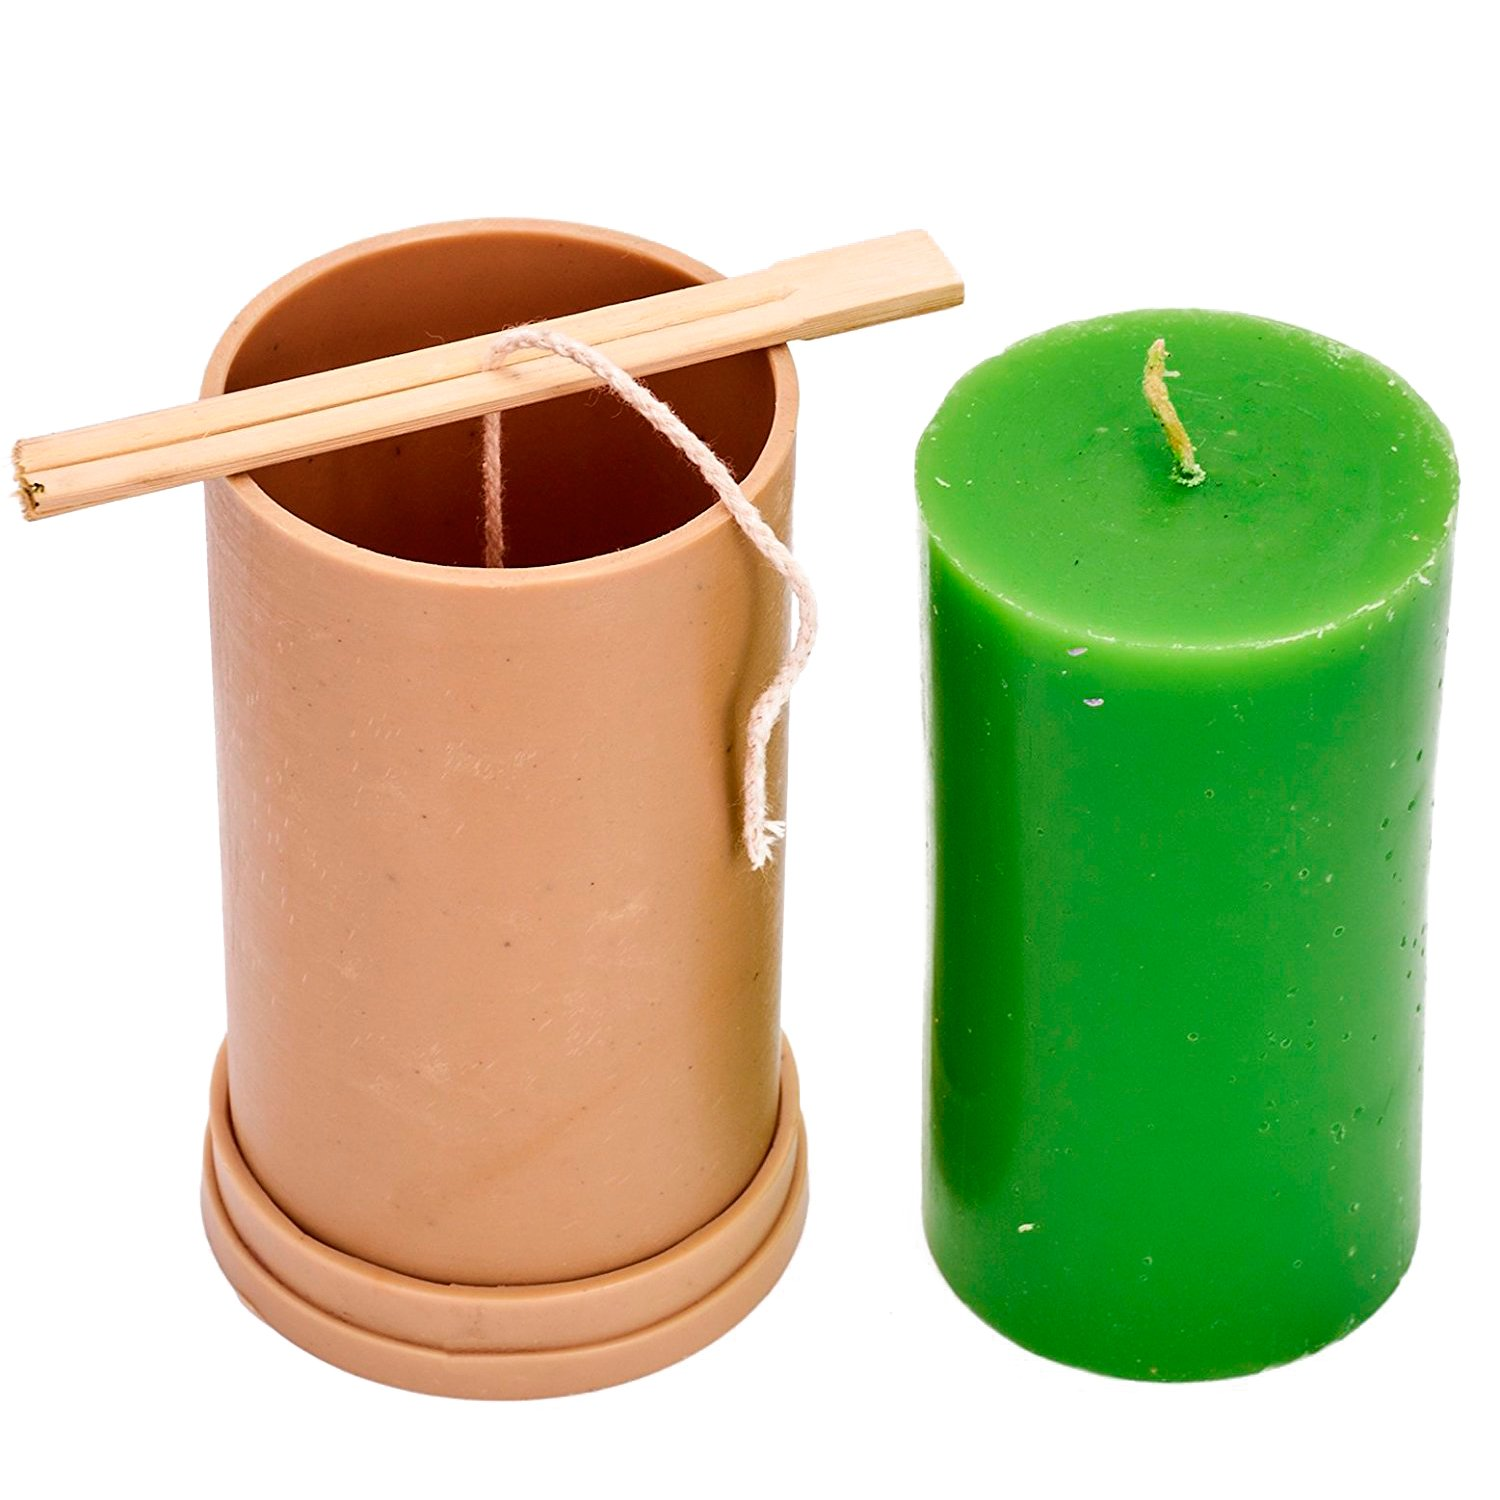 height: 5.1 in 30 ft Сylinder mold Plastic candle molds for making candles of wick included as a gift width: 2.7 in